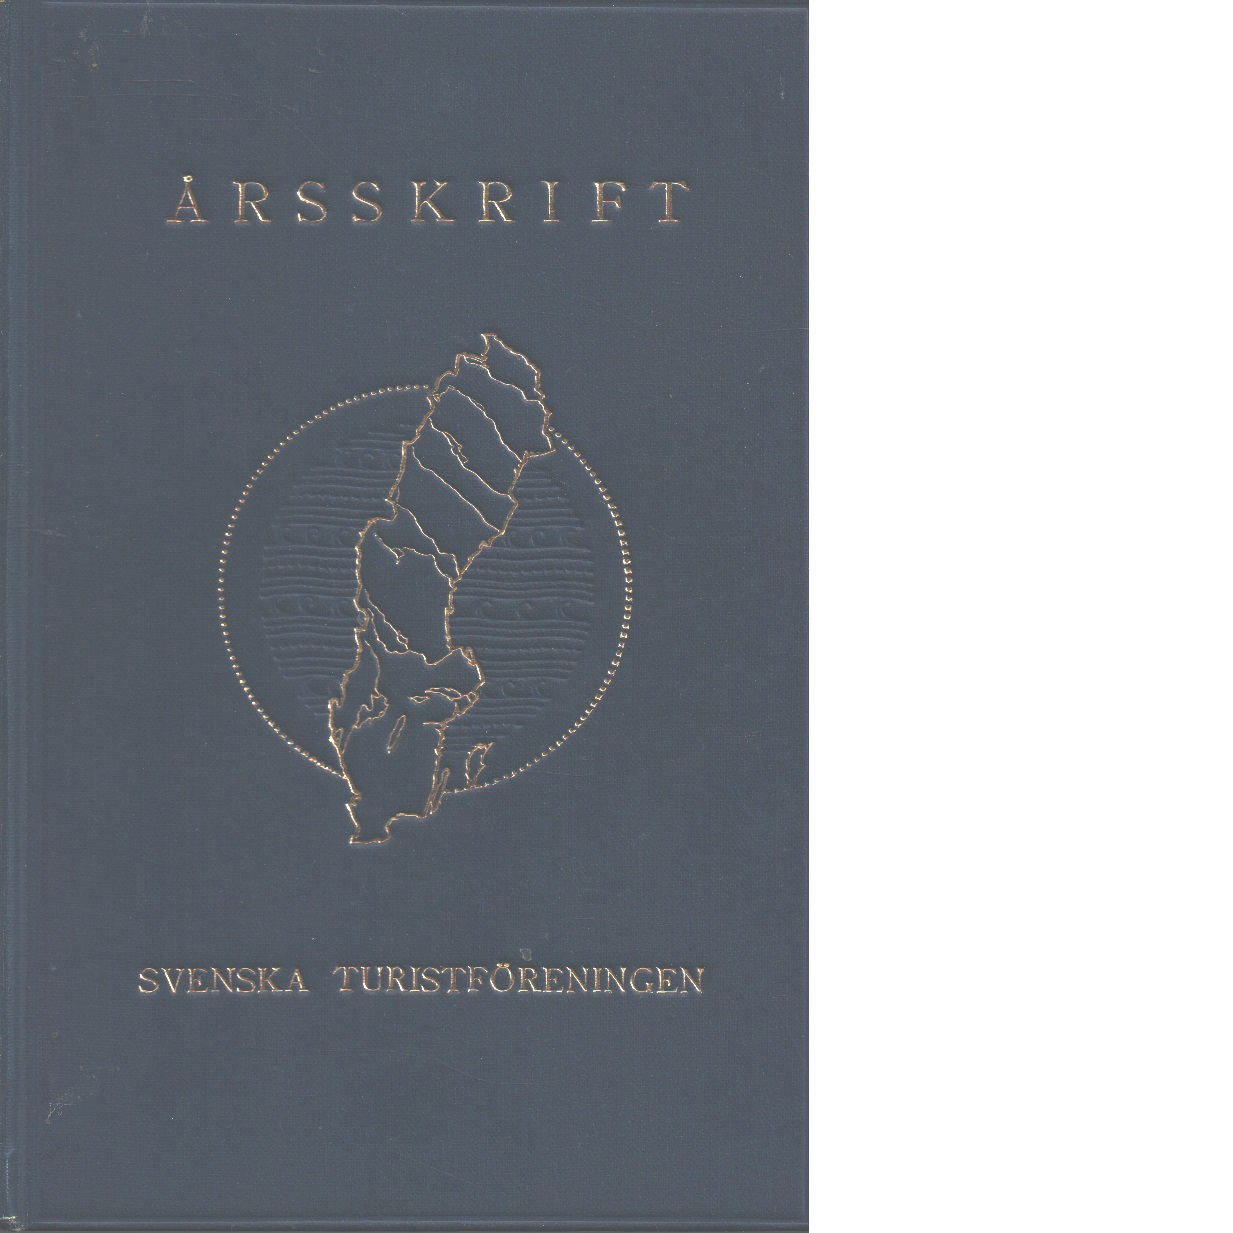 STF:s årsskrift 1912 - Red.